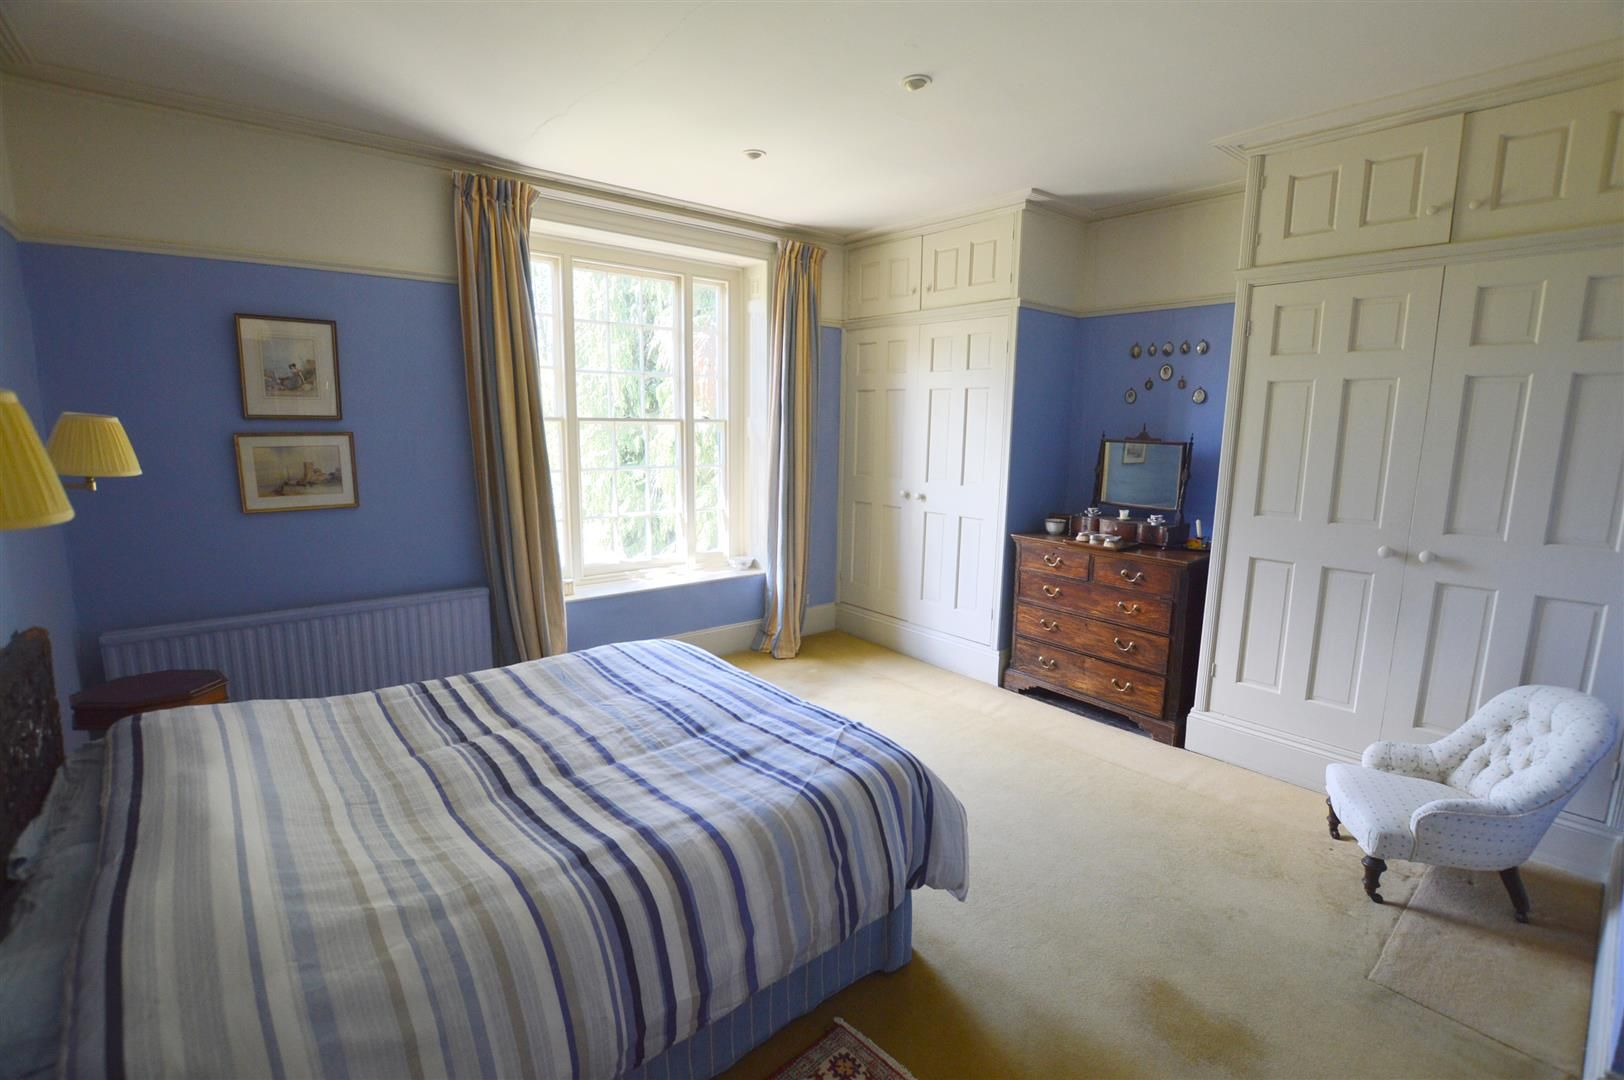 6 bed country-house for sale in Pembridge 9